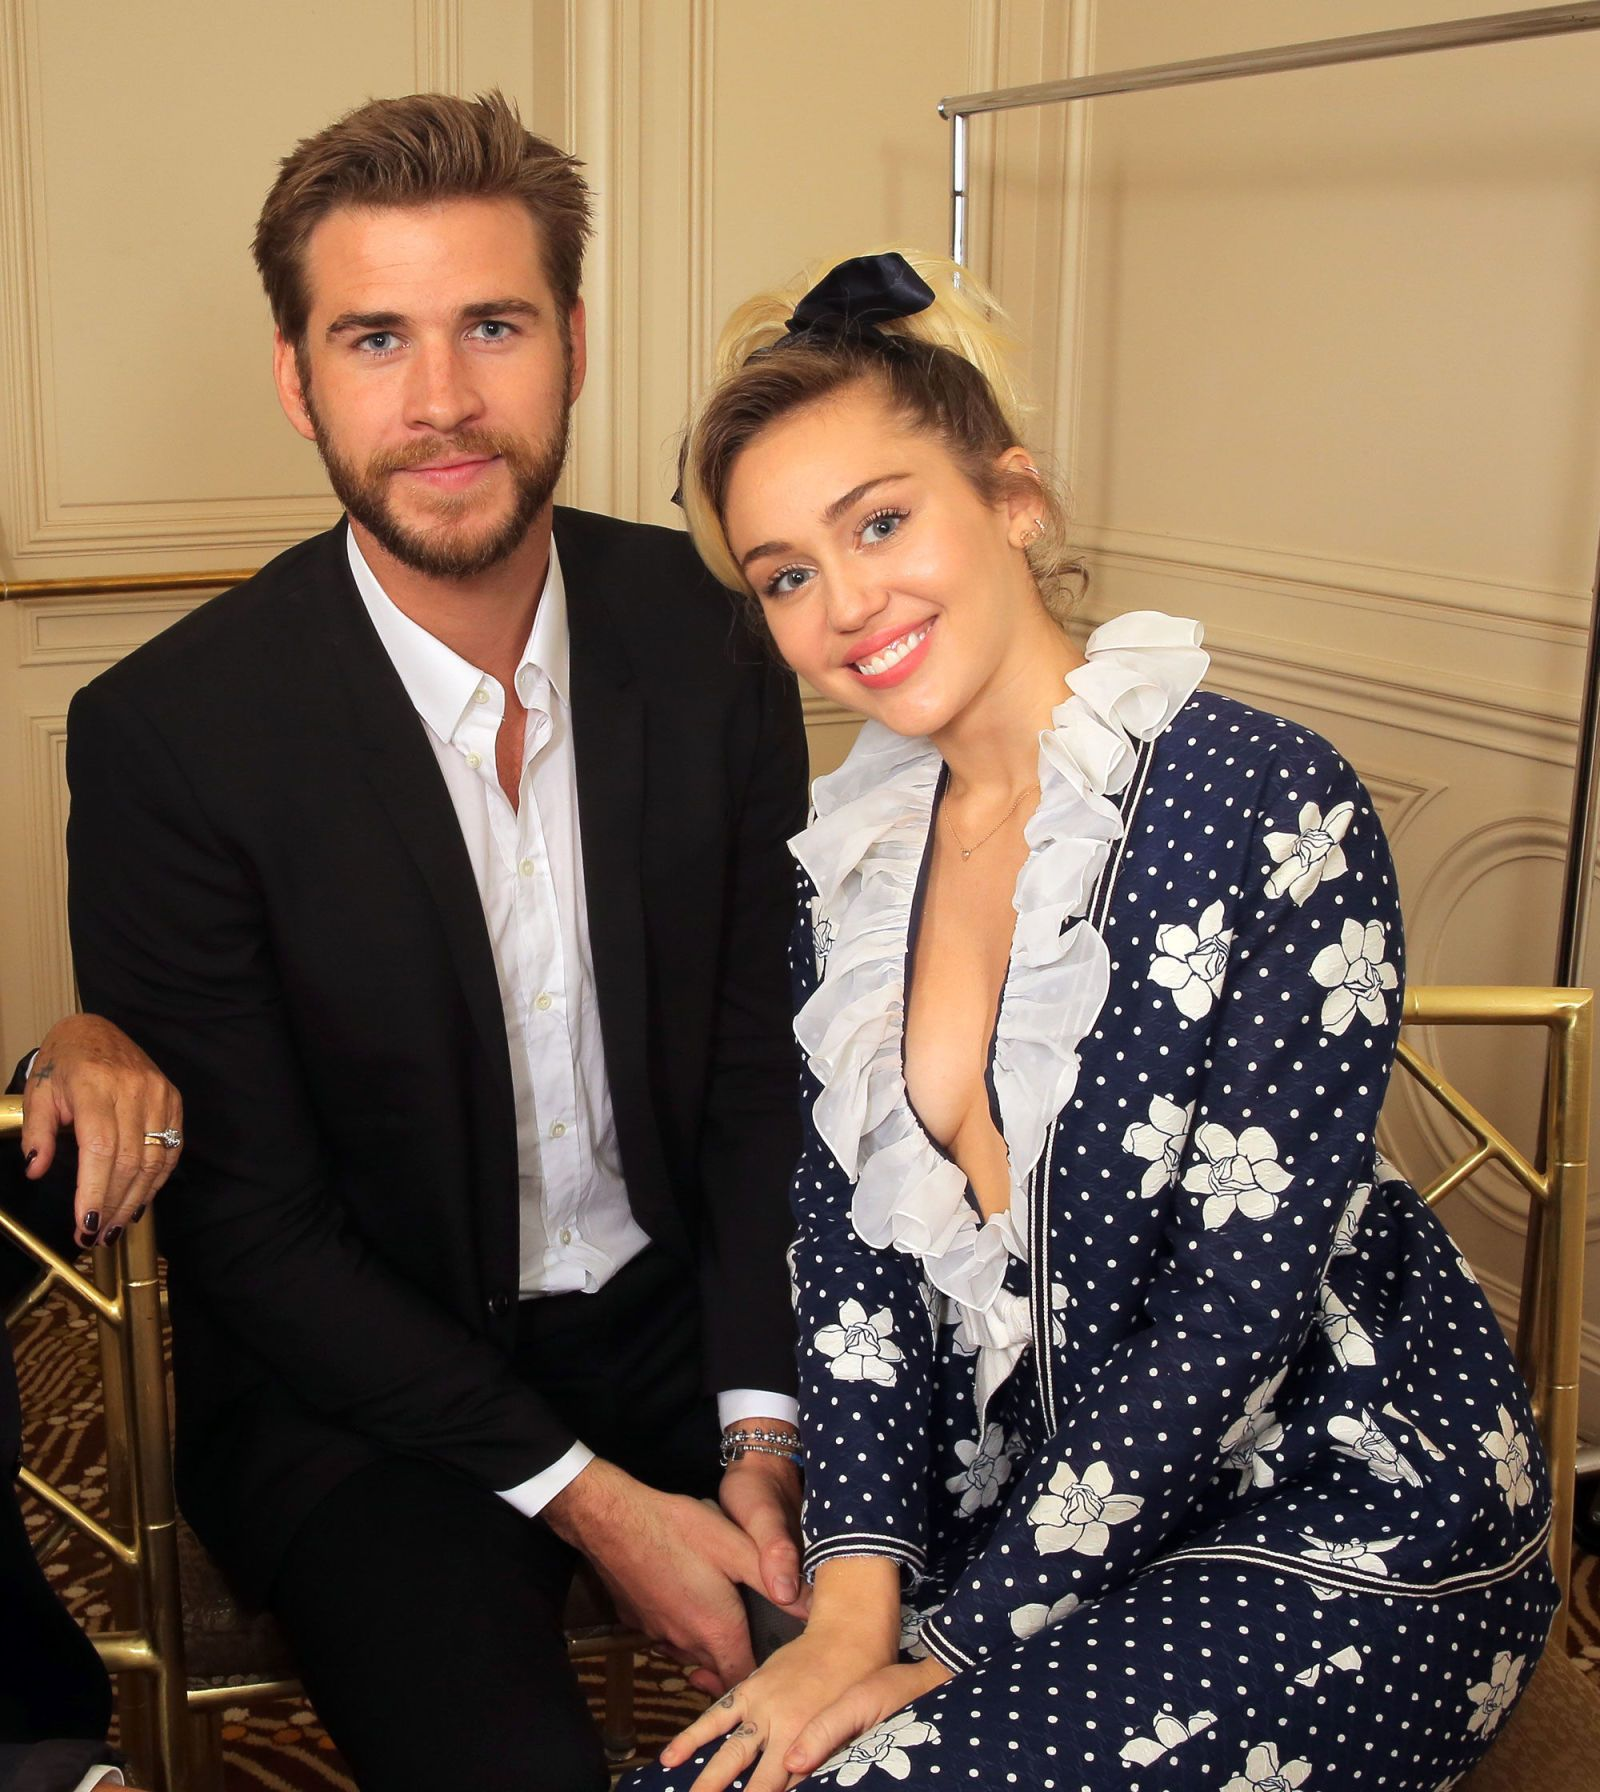 Shutterstock. Liam Hemsworth And Miley Cyrus ...